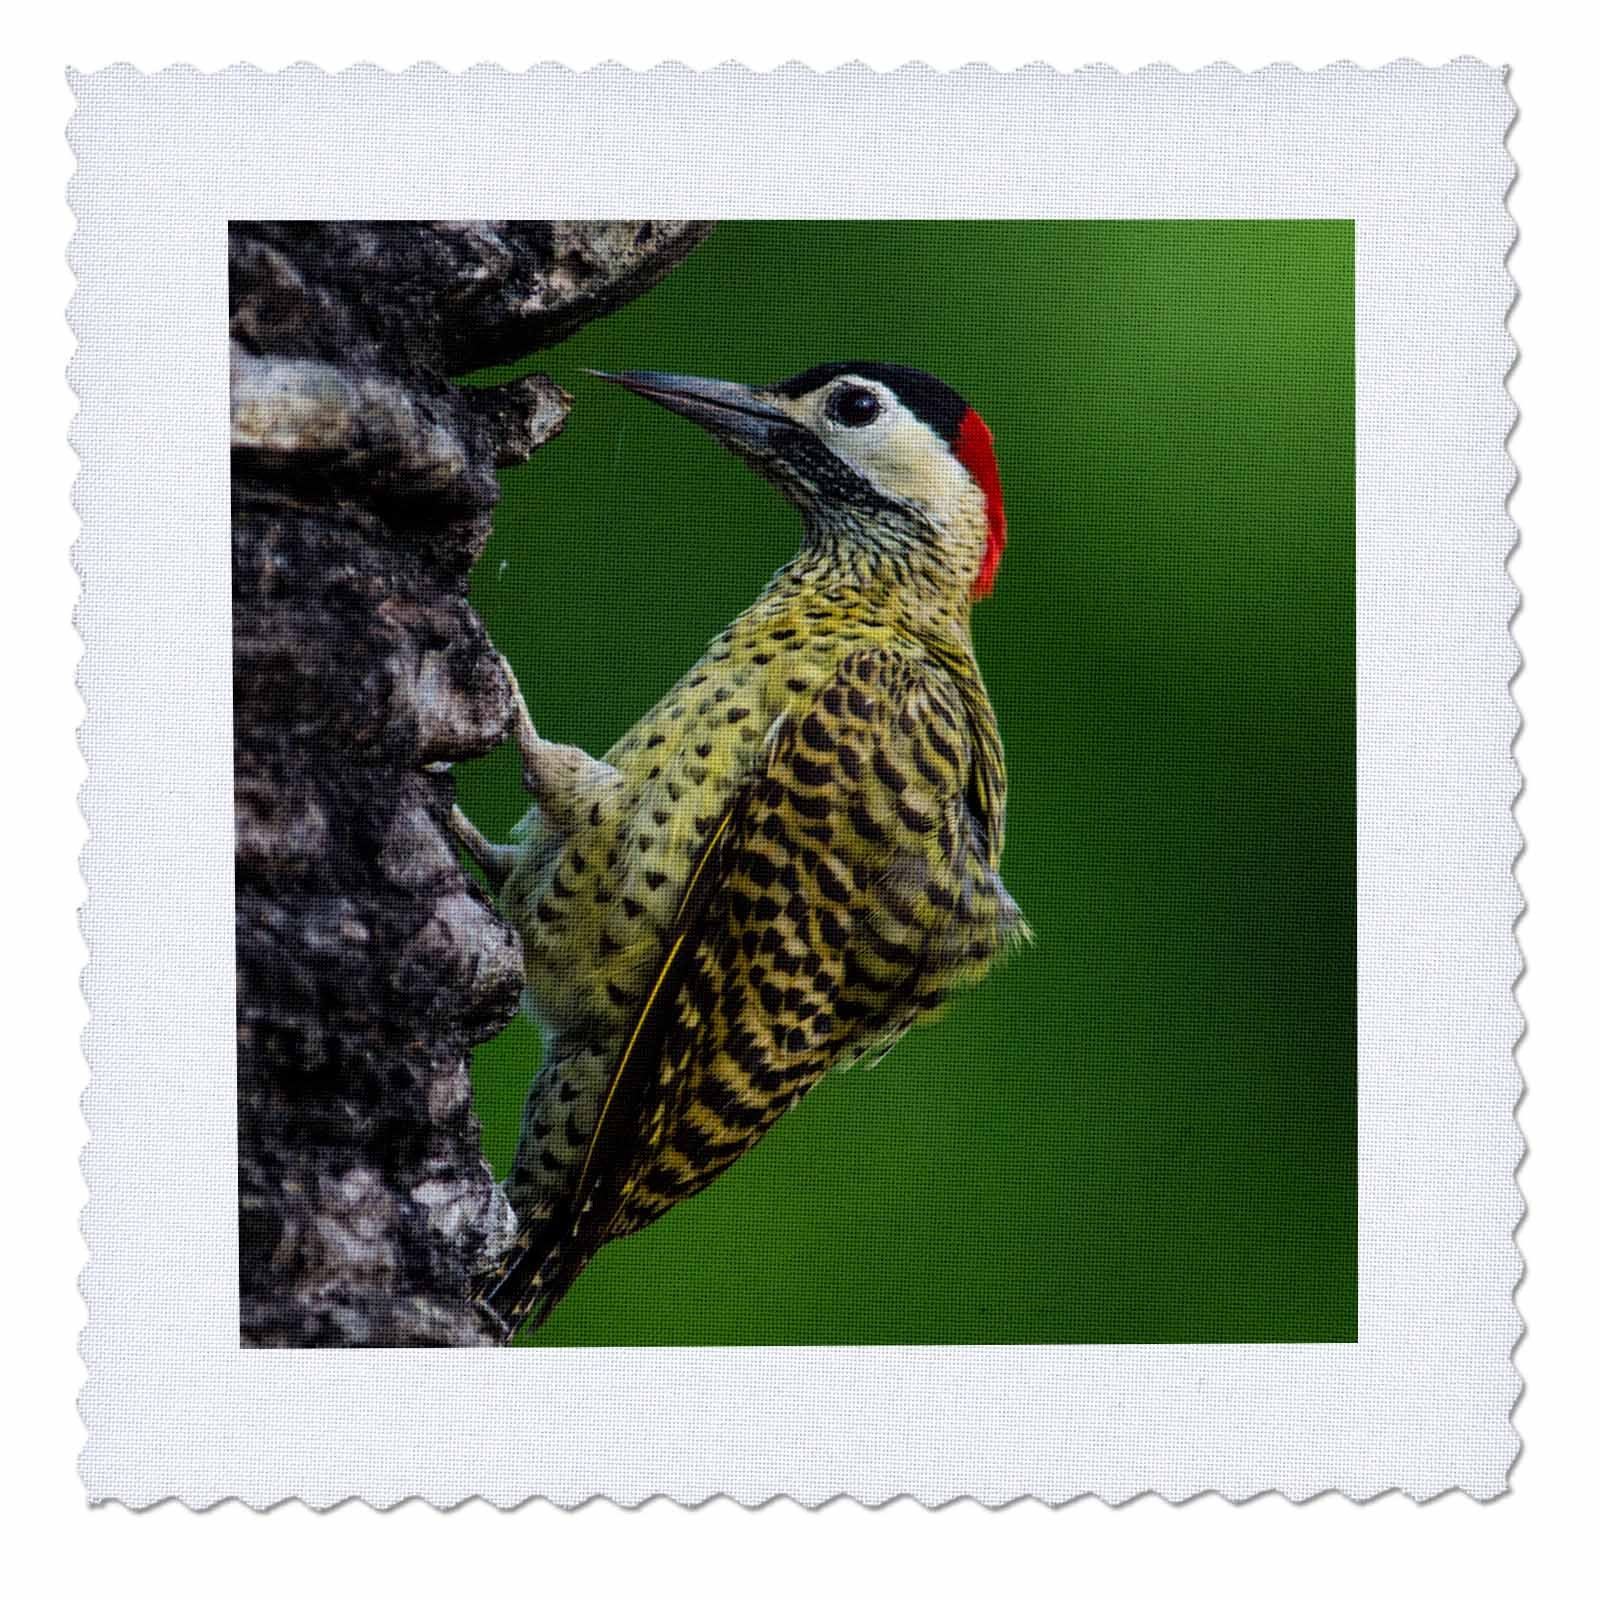 3dRose Danita Delimont - Birds - Brazil. A green barred woodpecker in the Pantanal - 22x22 inch quilt square (qs_278228_9)